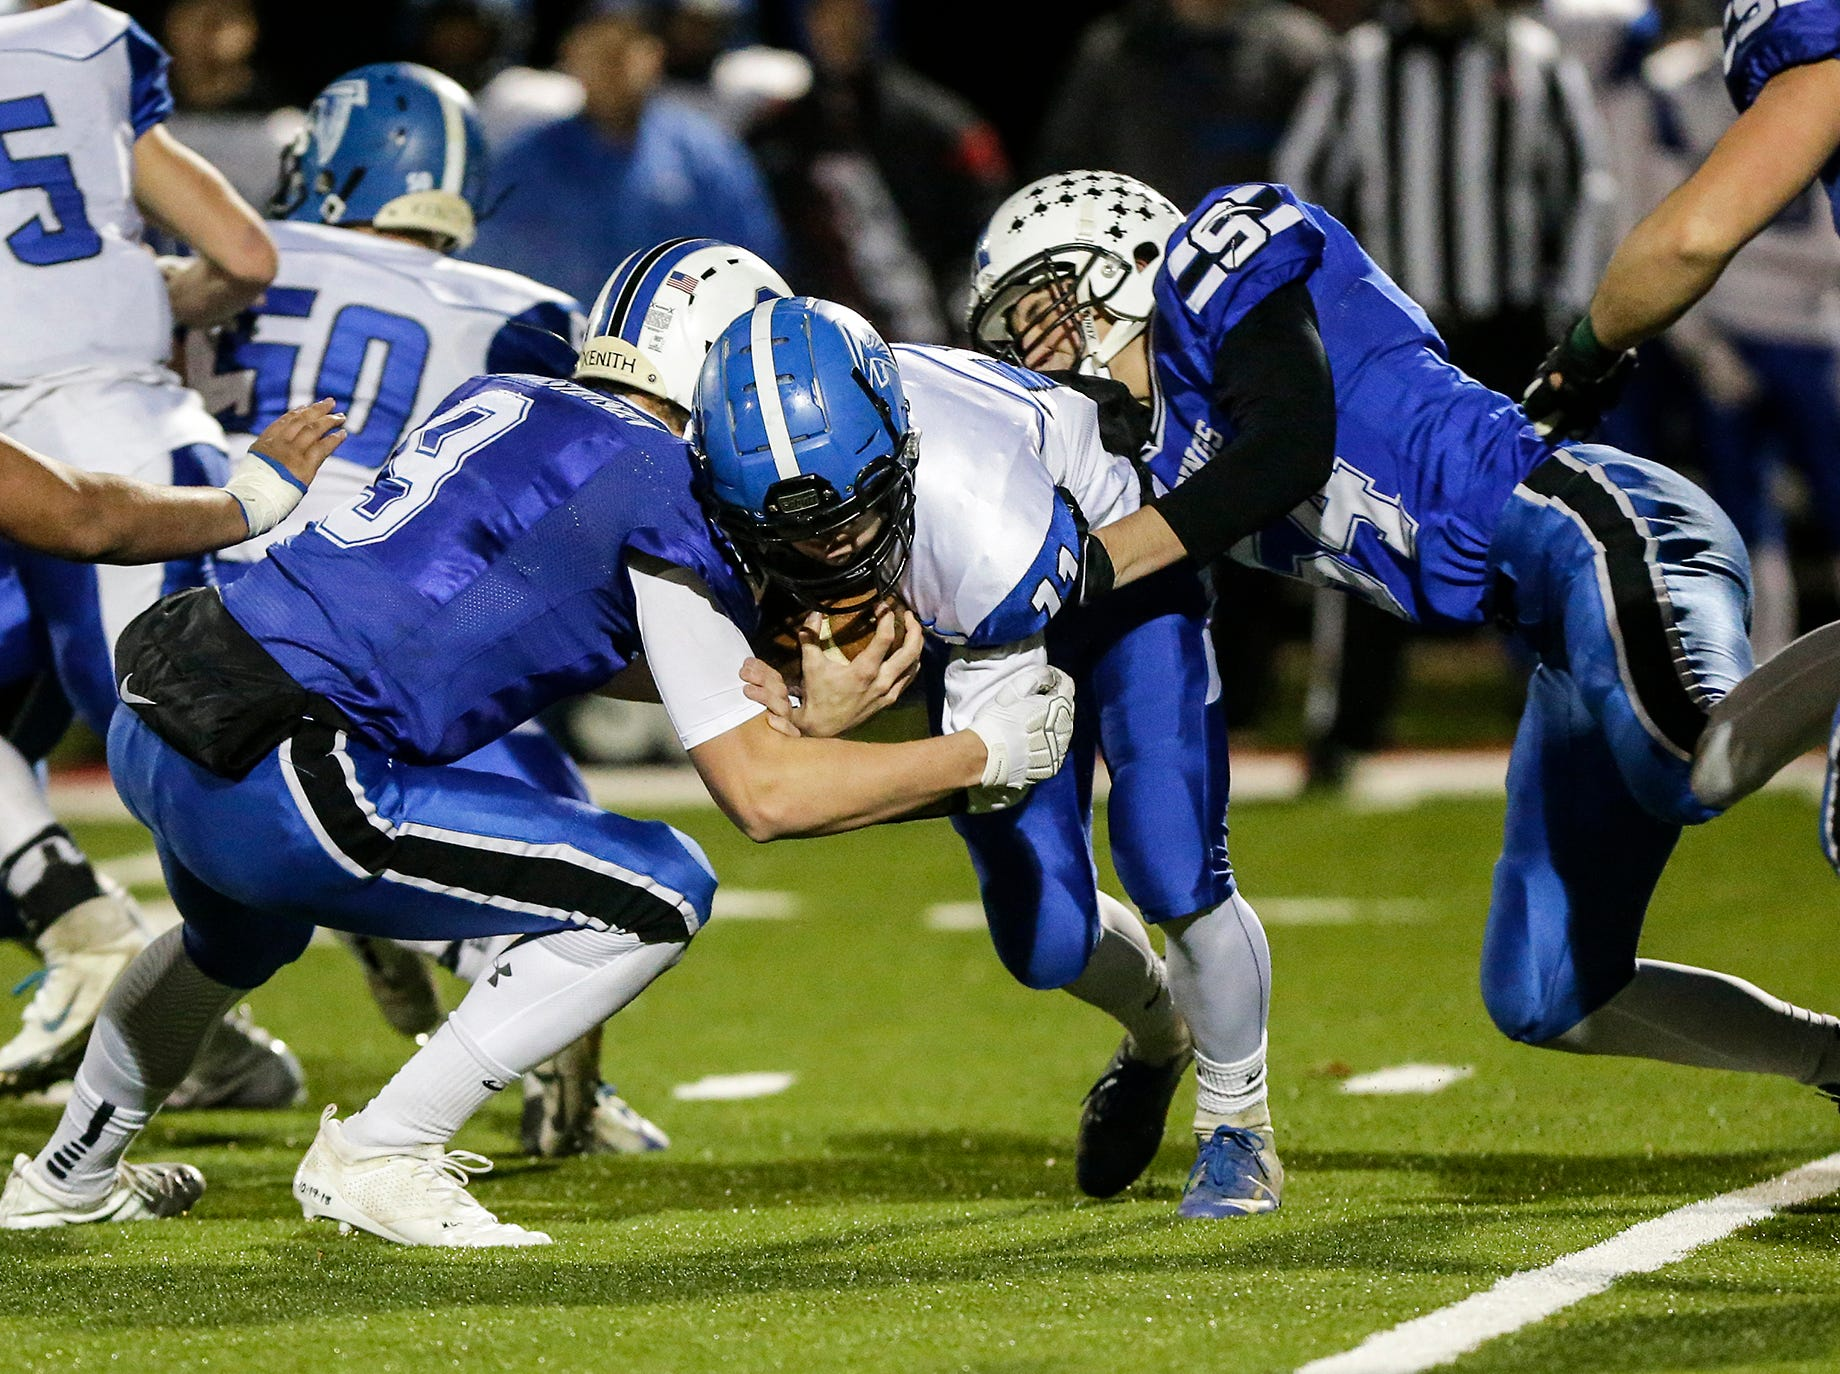 St. Mary's Springs Academy football's Cade Christensen (9) and Jacob Koffman (54) tackle Amherst High School's Lincoln Cullen Friday, November 2, 2018 during their WIAA division 5 level 3 playoff game played in Lomira, Wisconsin. Springs won the game 12-0. Doug Raflik/USA TODAY NETWORK-Wisconsin